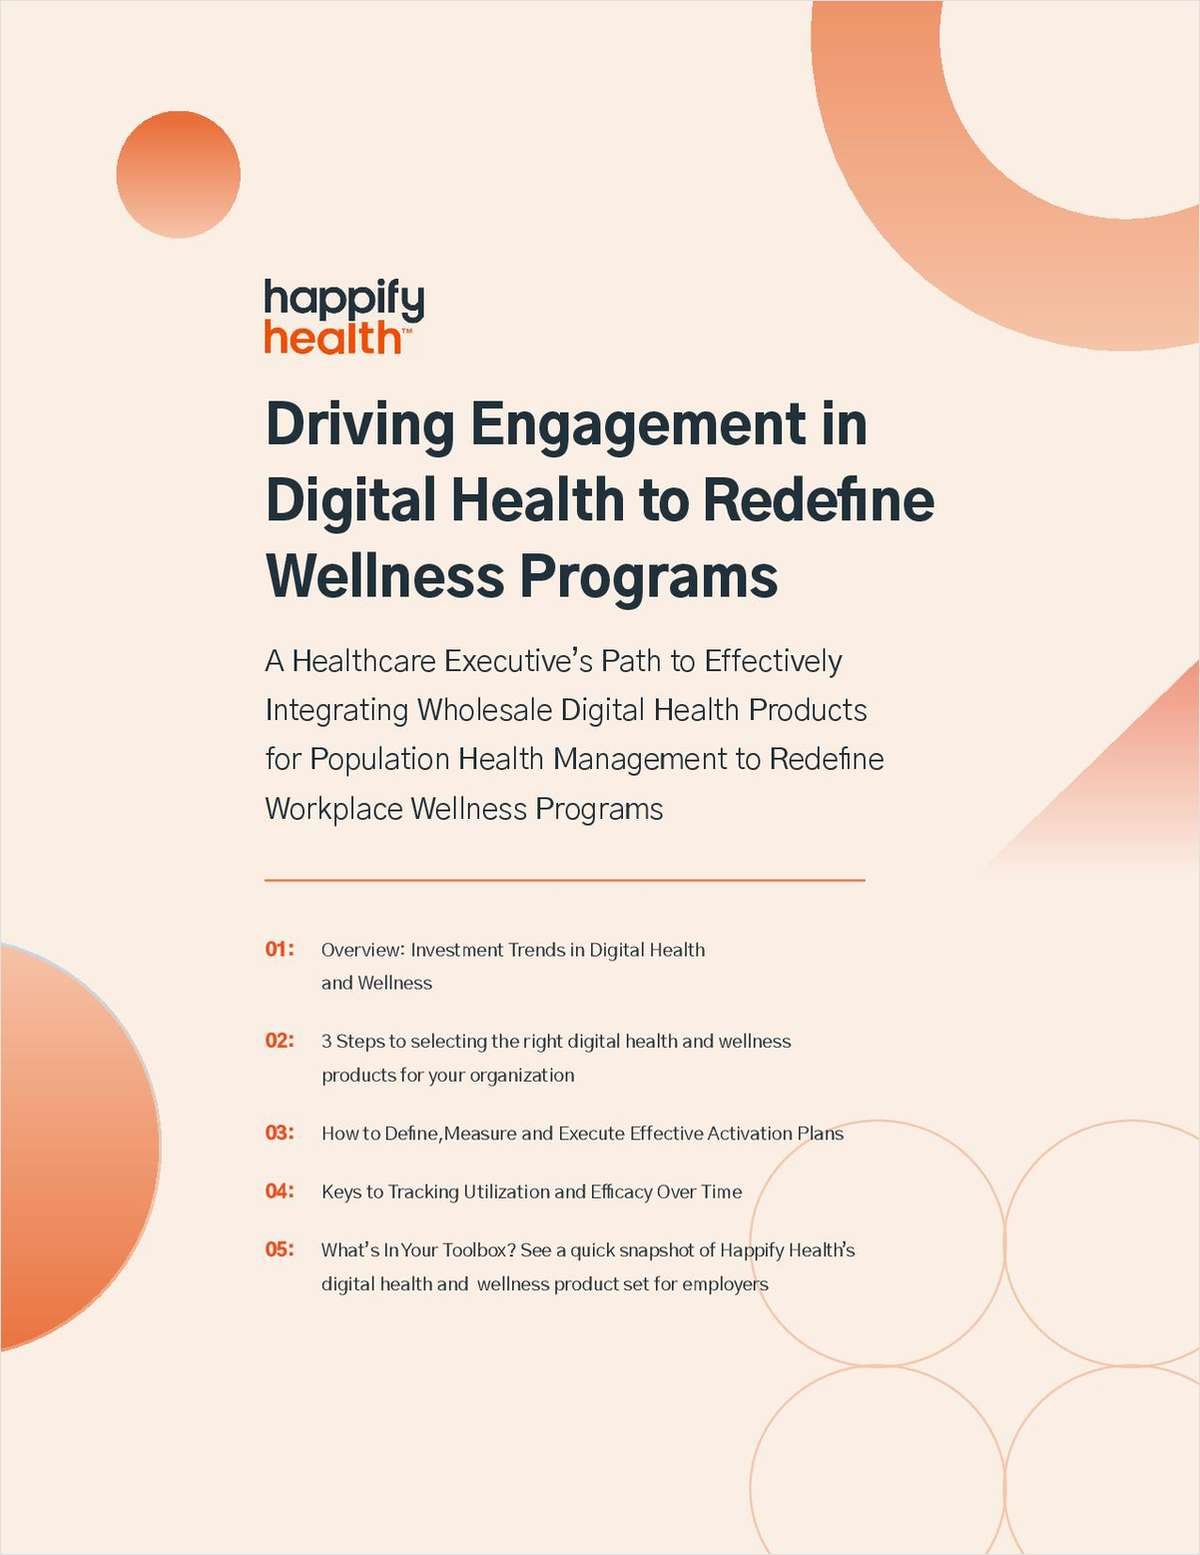 Driving Engagement in Digital Health to Redefine Wellness Programs